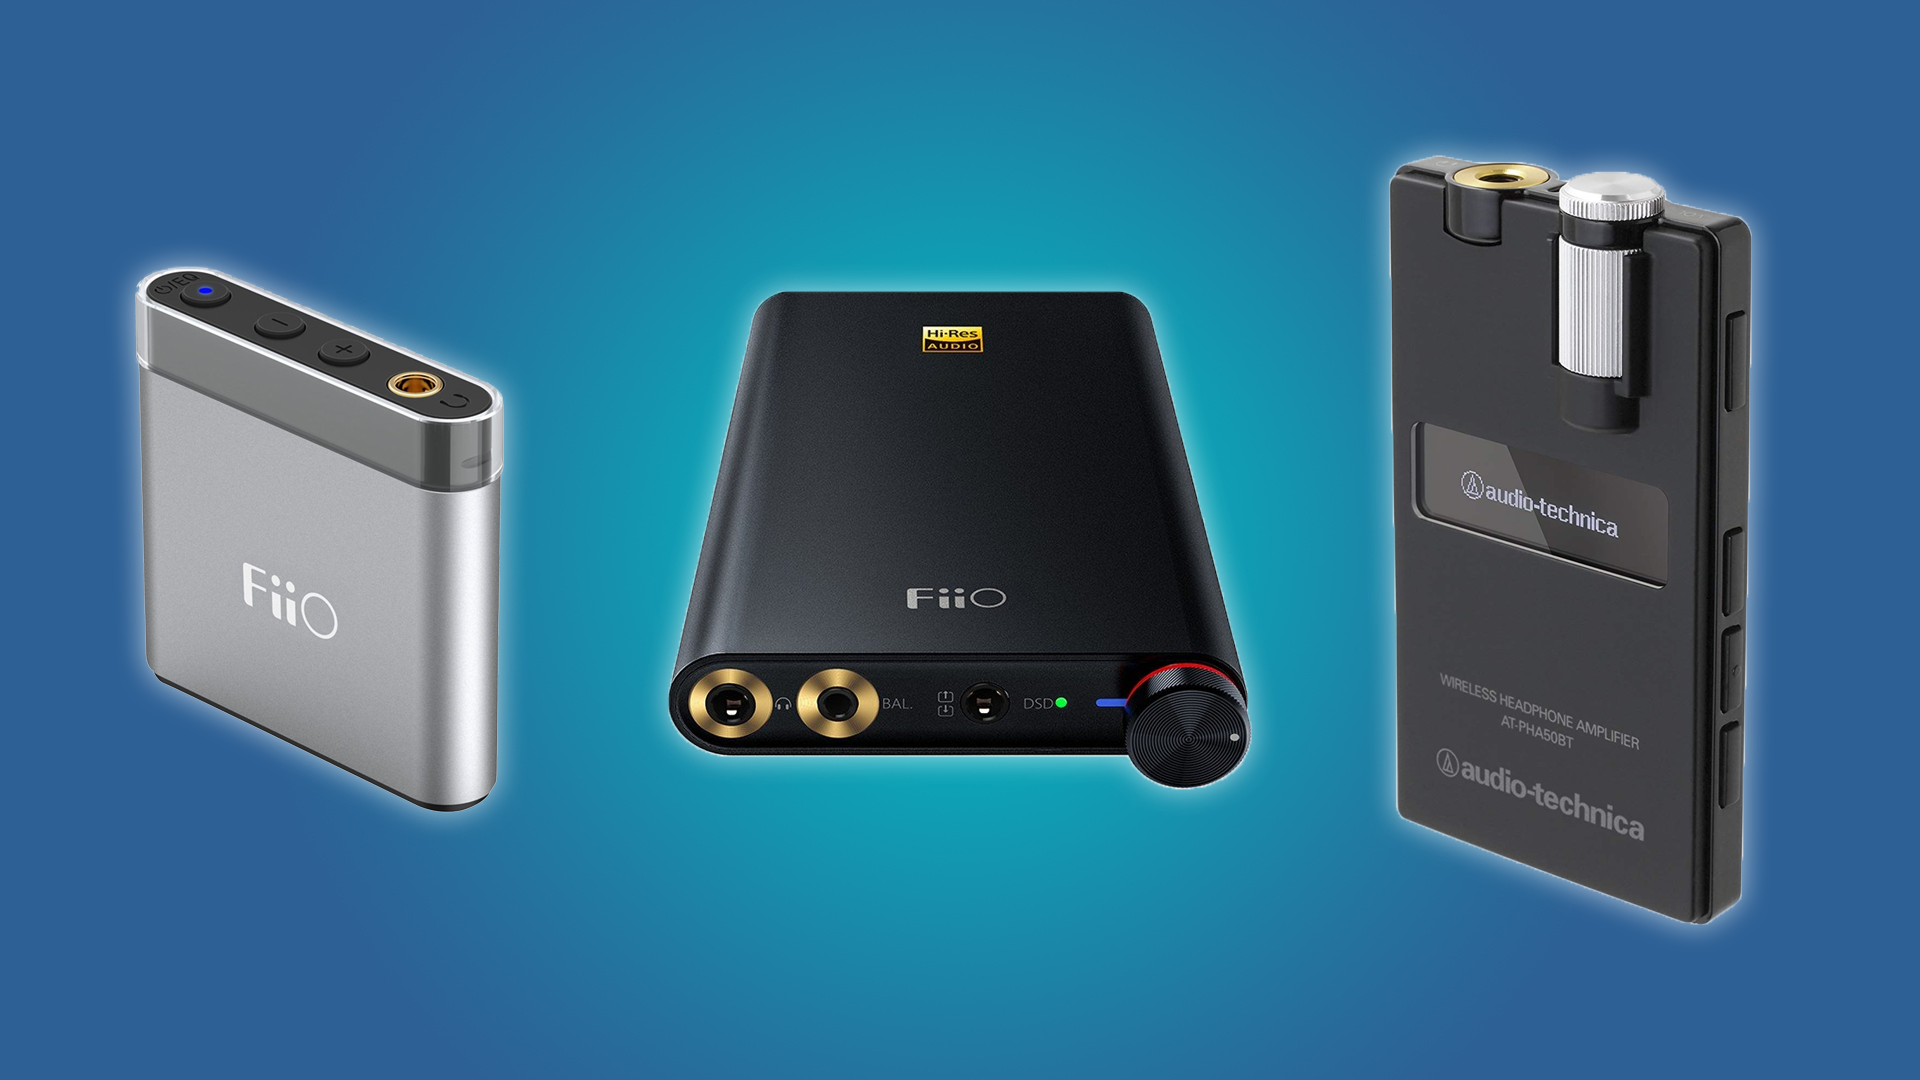 The FiiO A1, the FiiO Q1 Mark II, and the Audio-Technica Wireless DAC